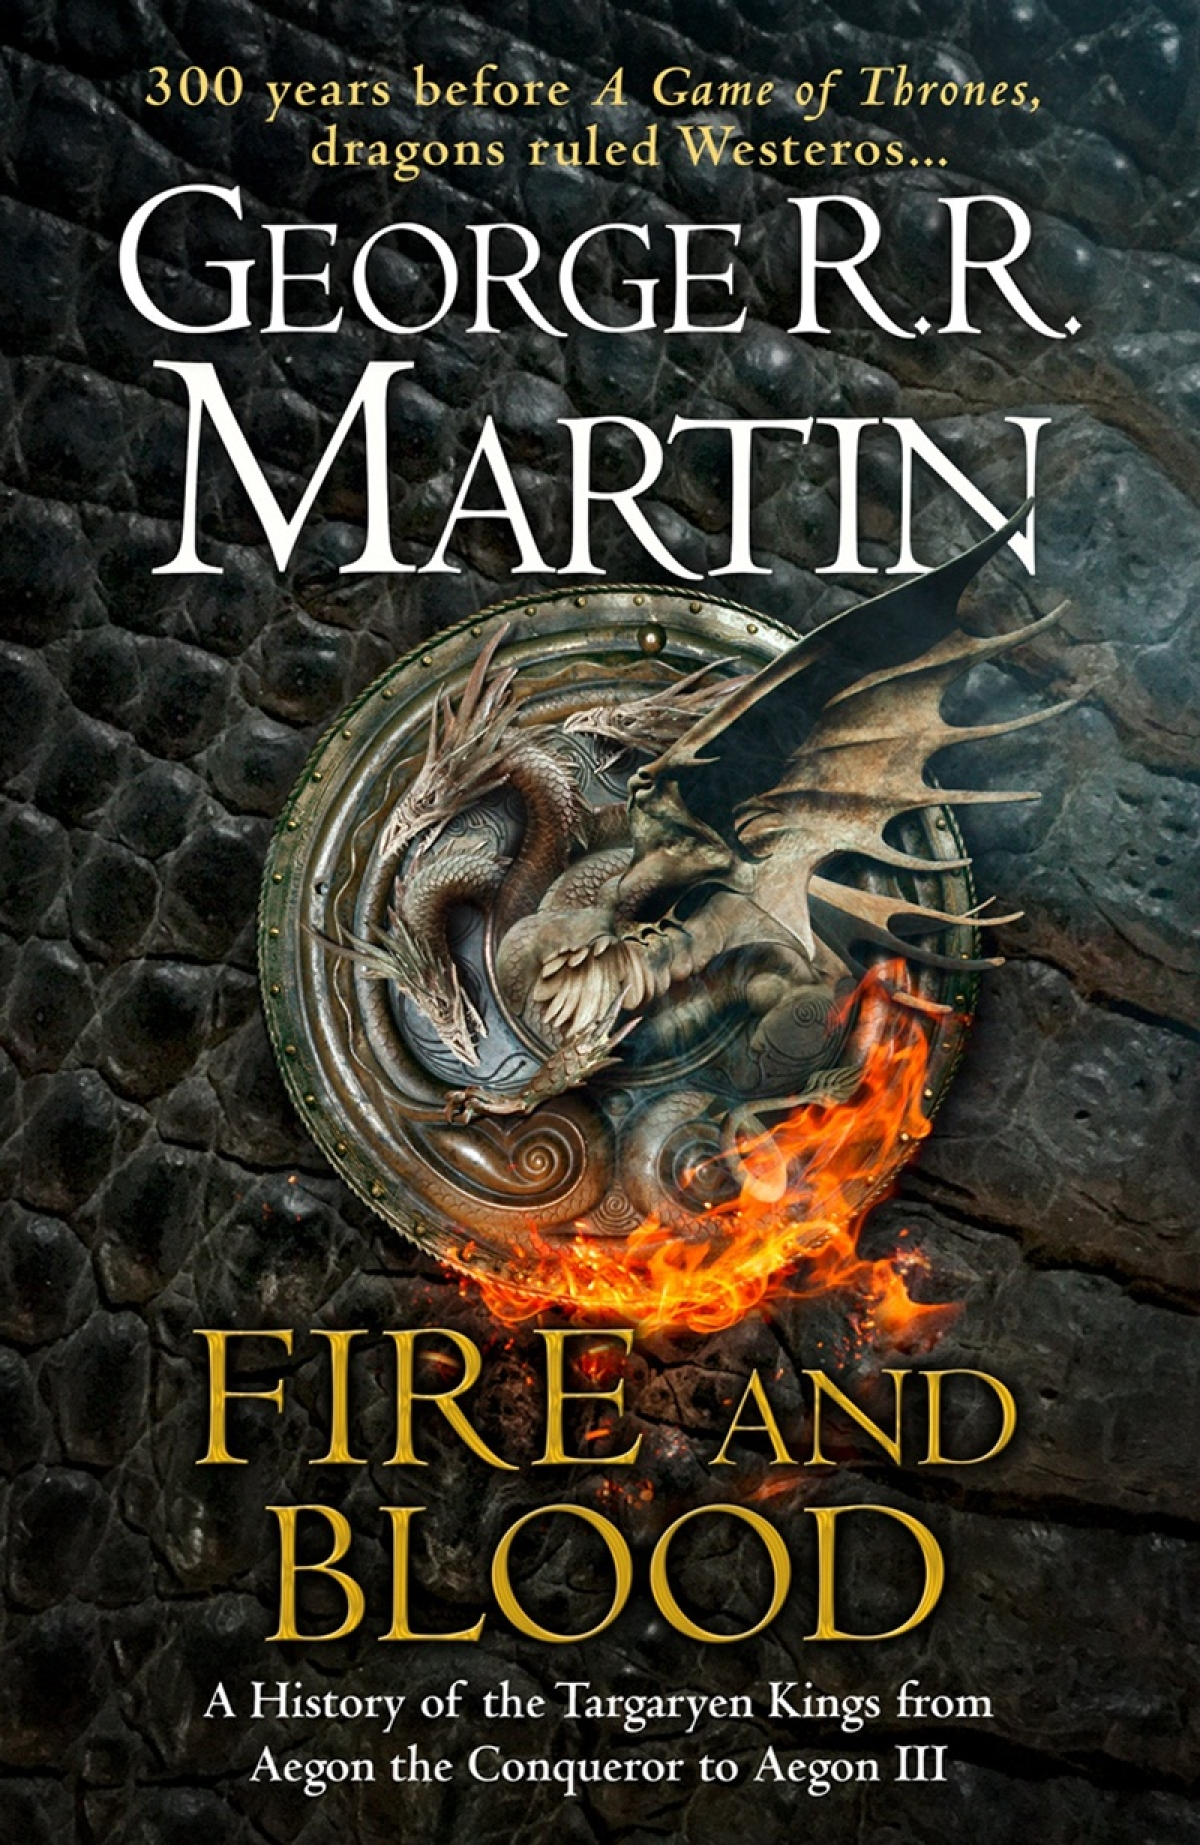 Fire and Blood by George R R Martin: Review